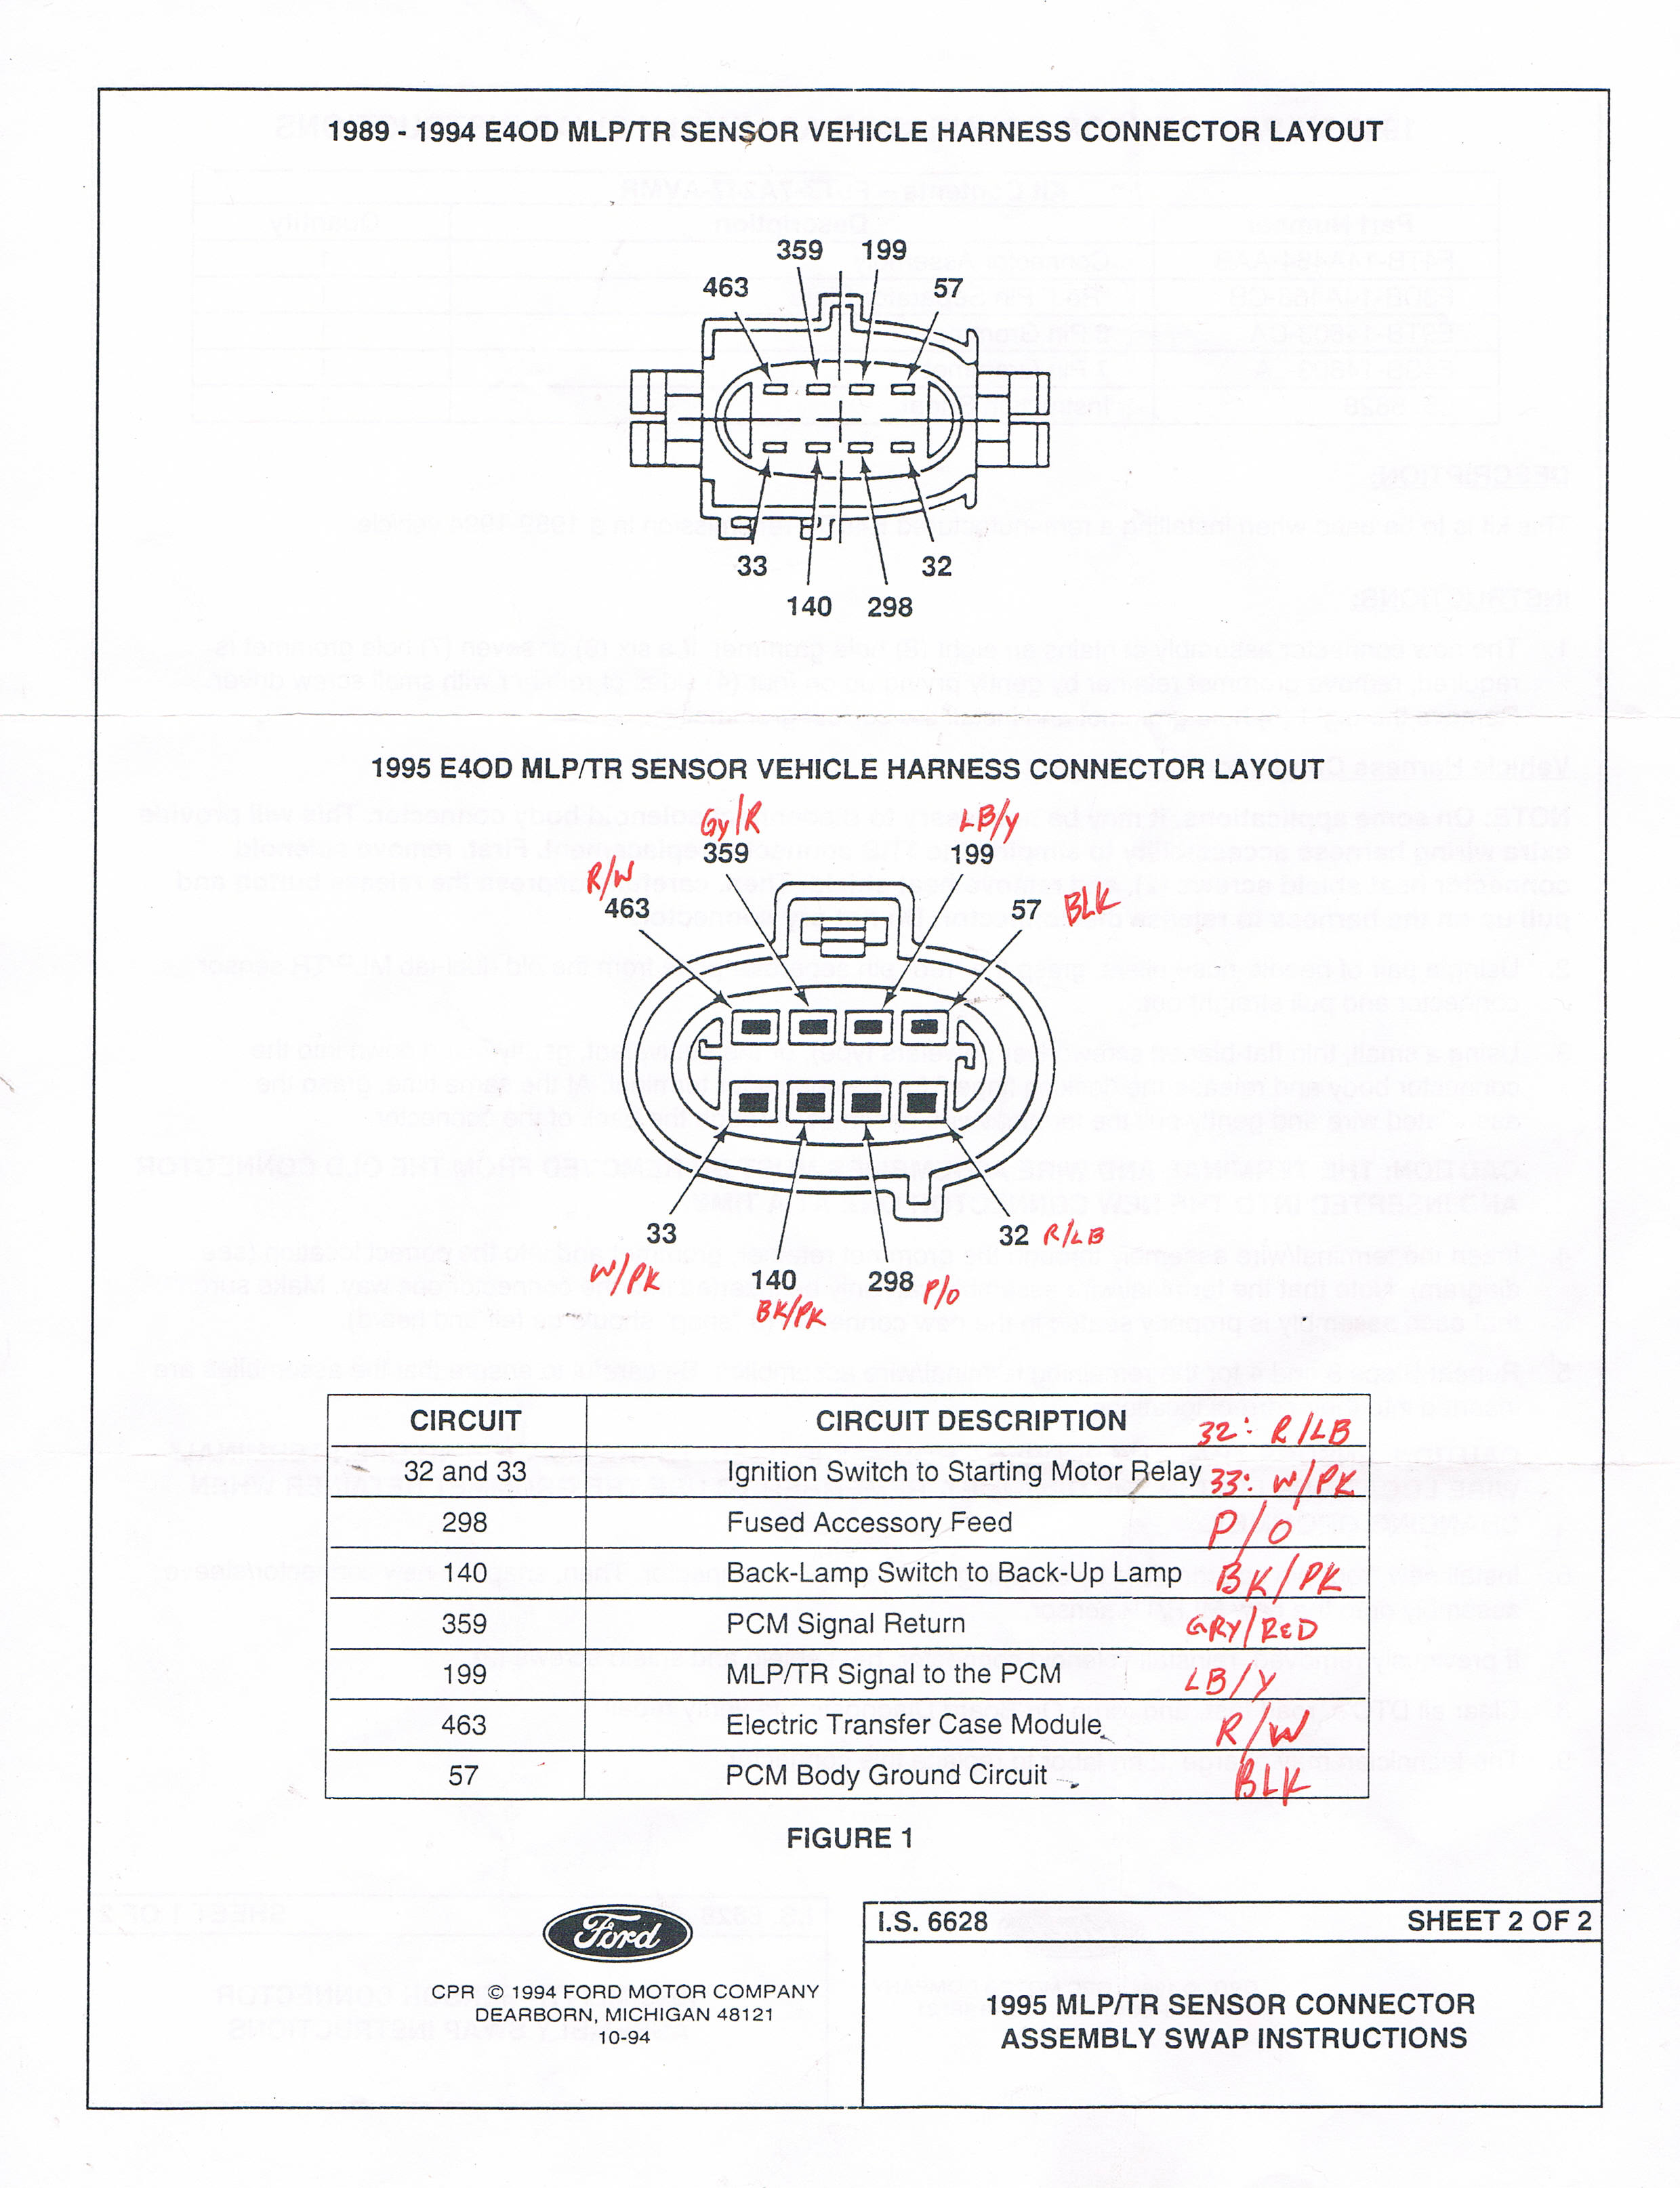 ccf12192012_00000 january 2013 the transletter e40d transmission wiring diagram at n-0.co